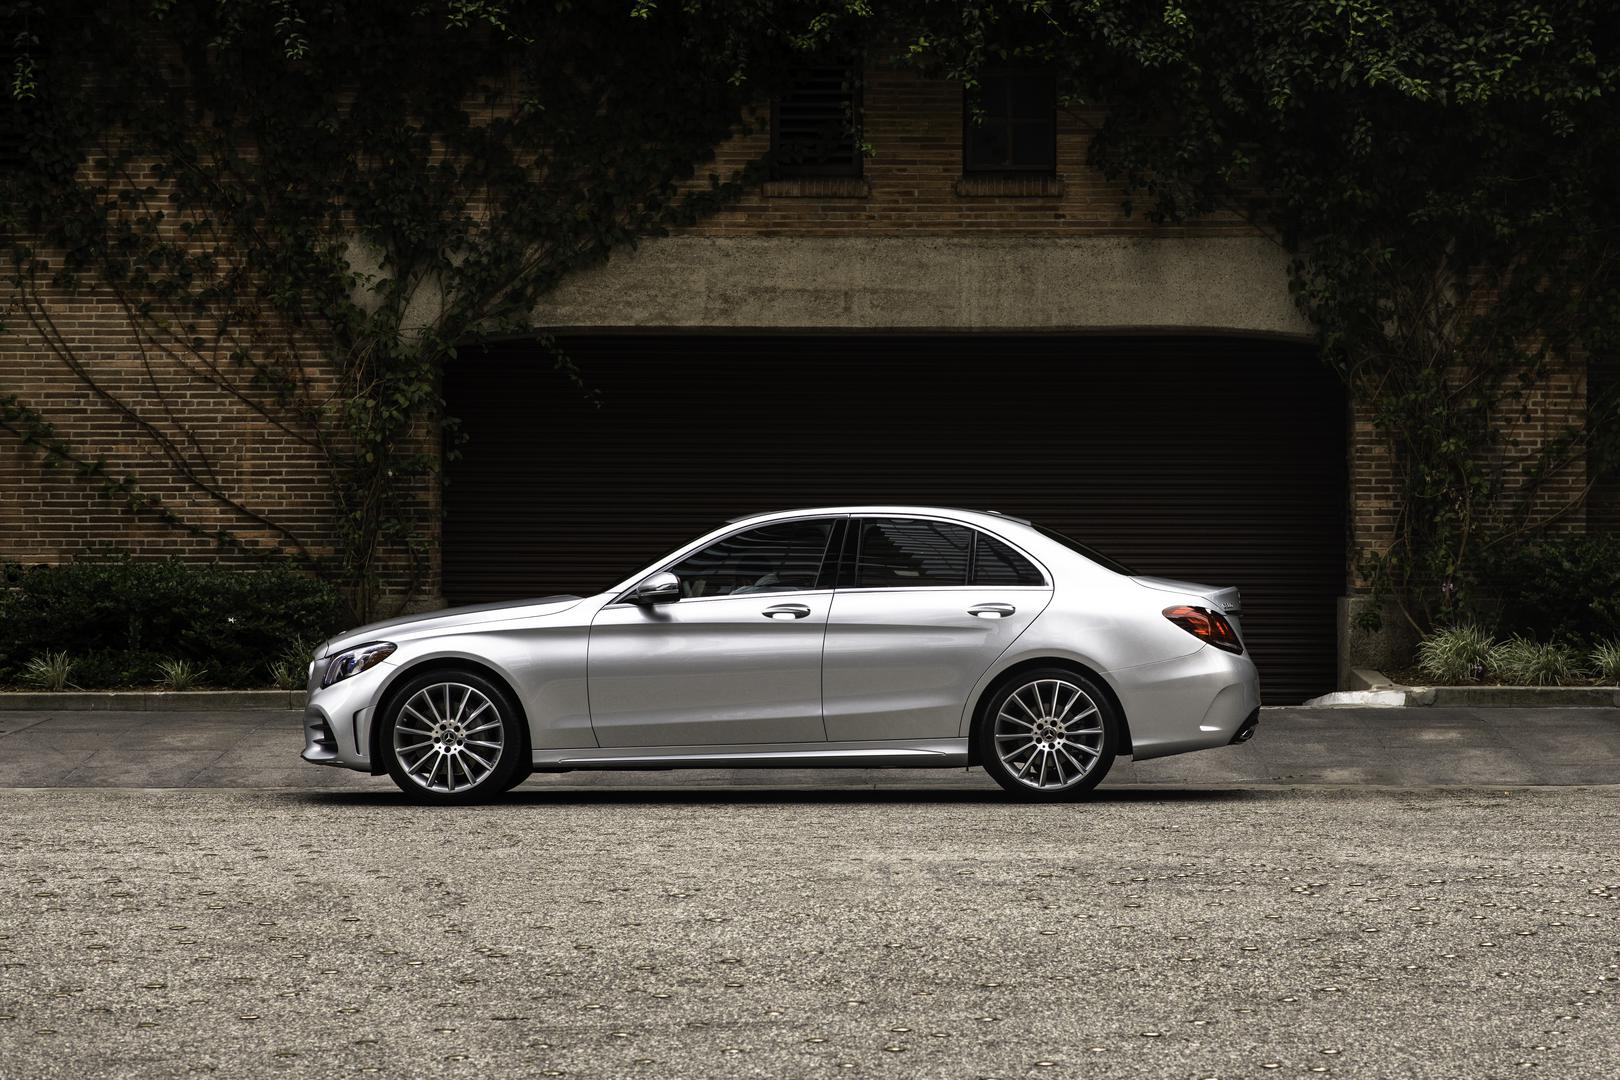 Mercedes-Benz C-Class | Mercedes-Benz of South Orlando, FL